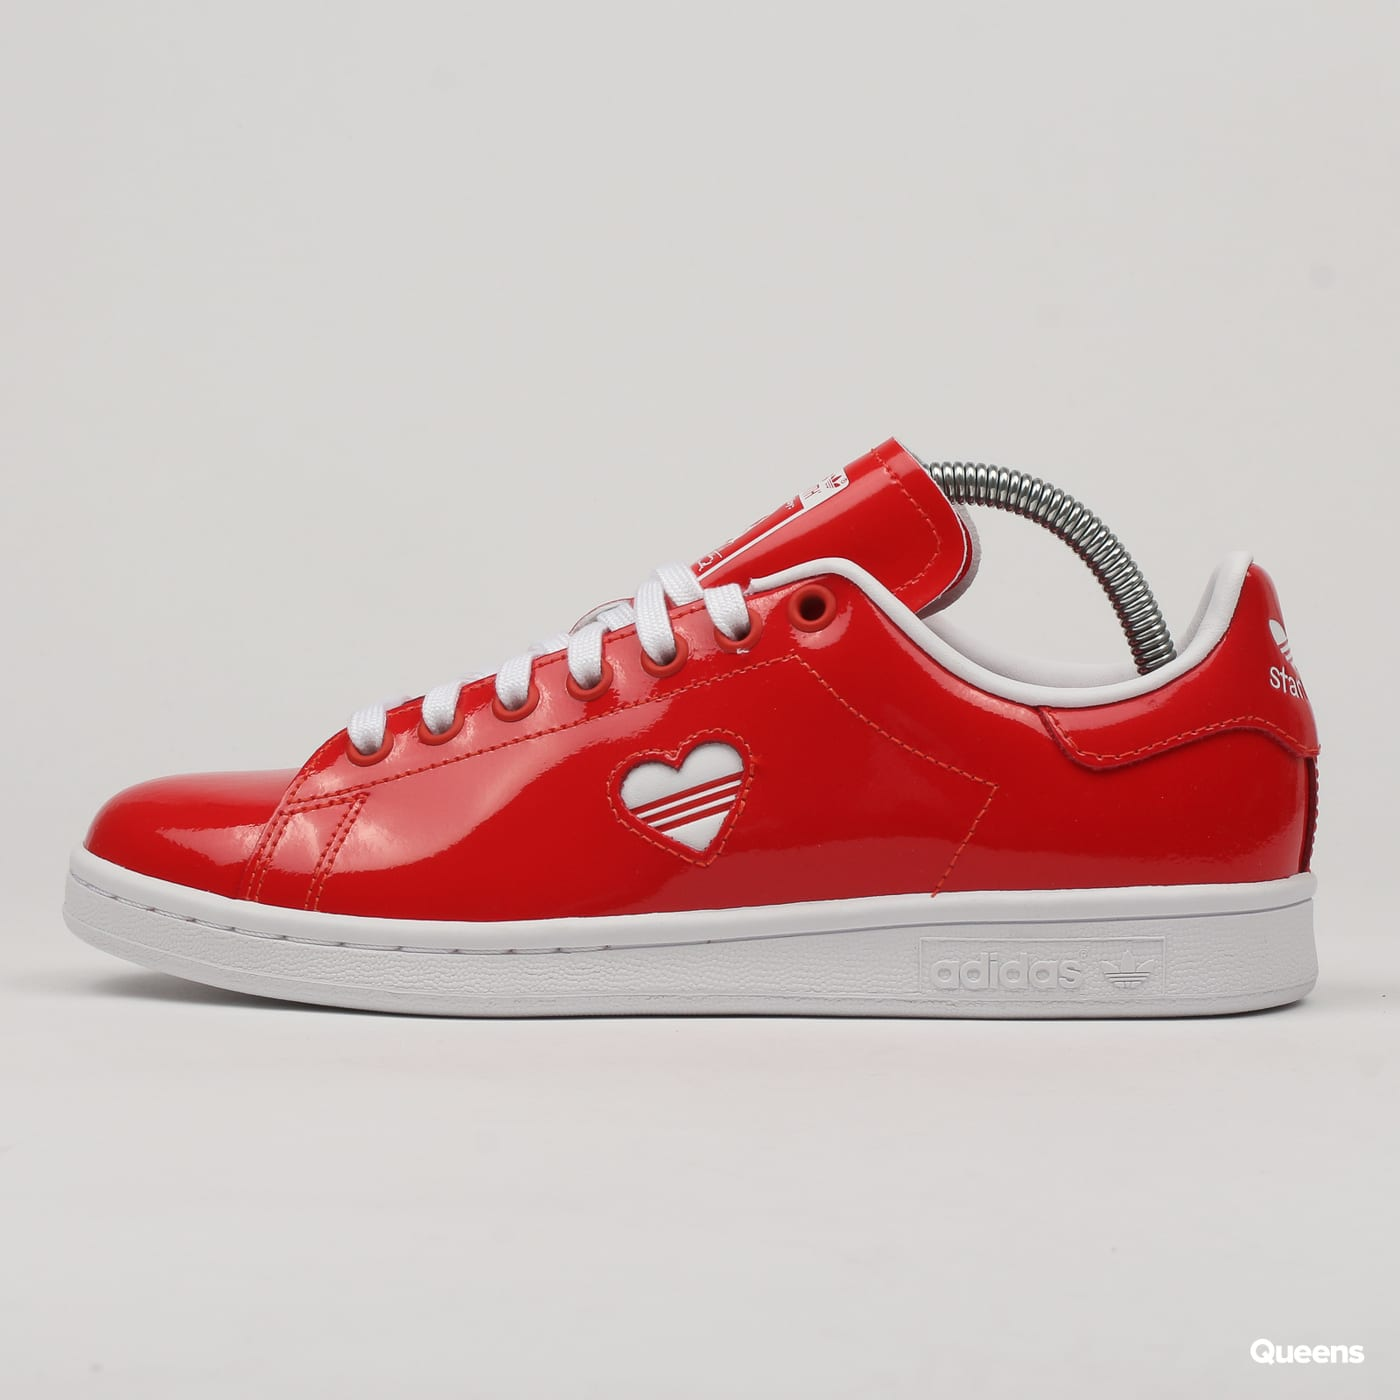 super popular 4d294 97e17 Zoom in Zoom in Zoom in Zoom in Zoom in. adidas Originals Stan Smith W  actred   ftwwht ...